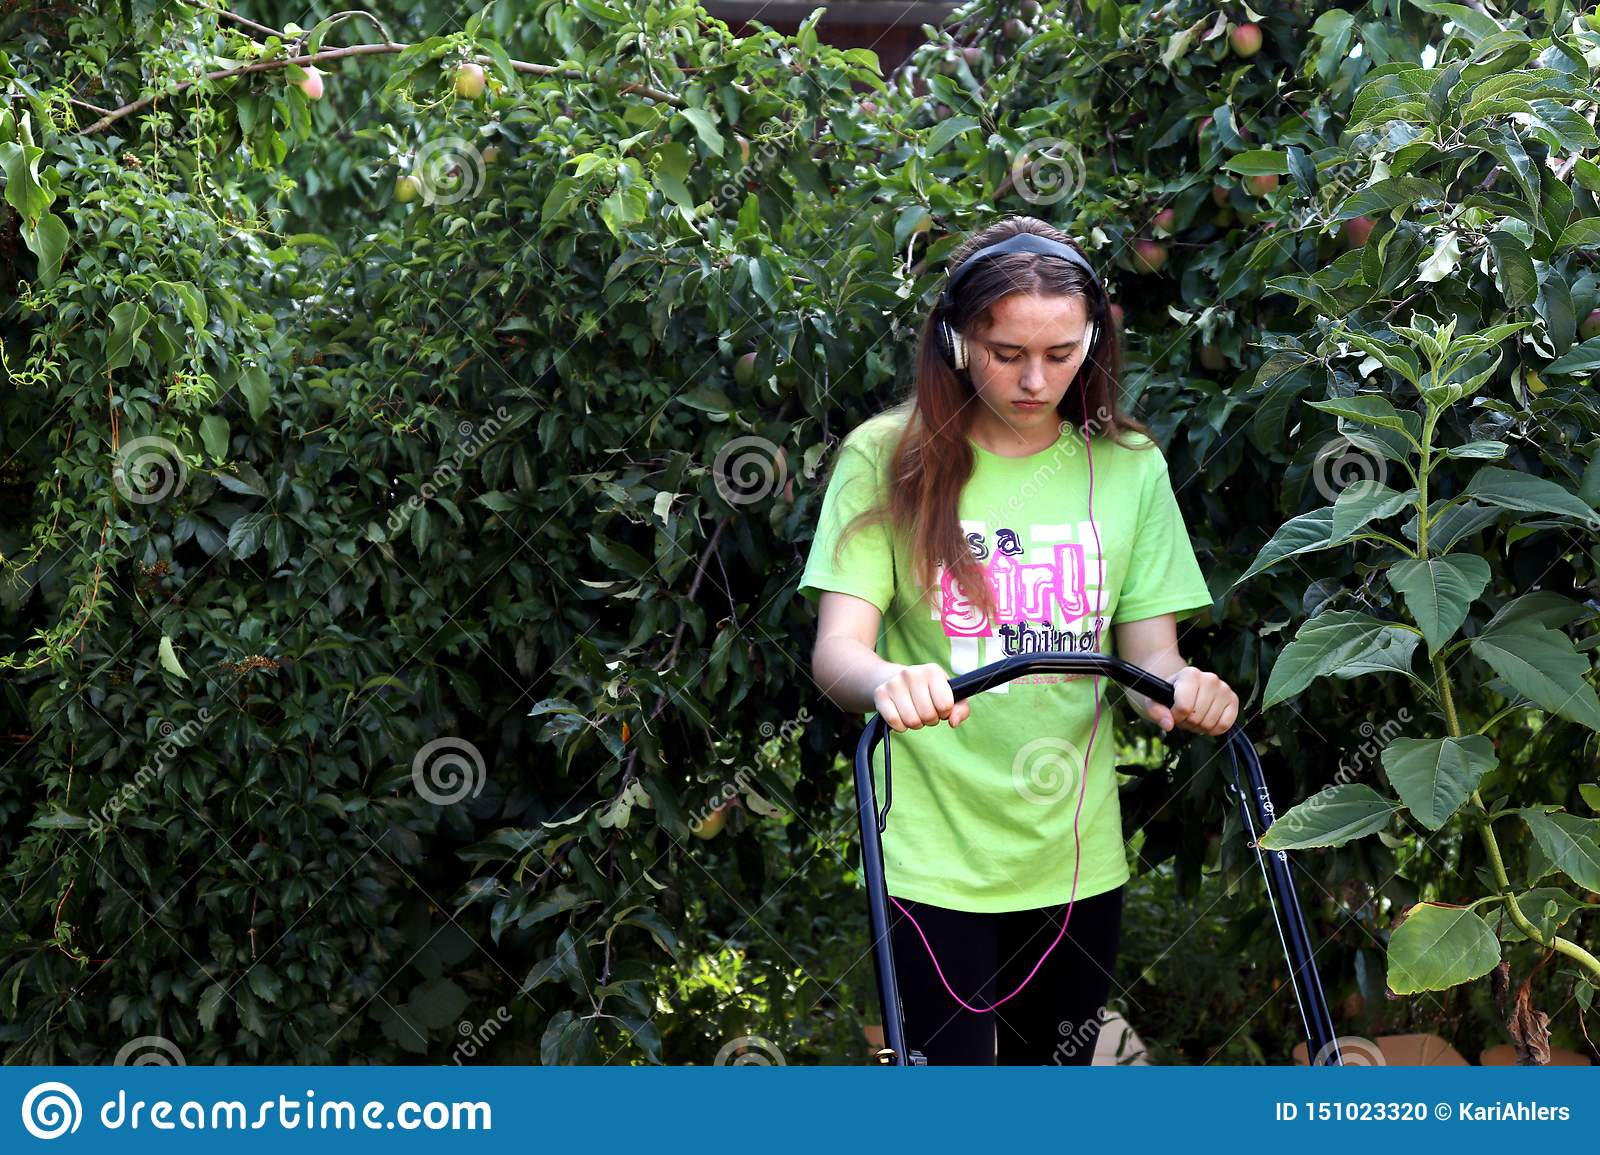 Teenager mowing lawn surrounded by apple tree